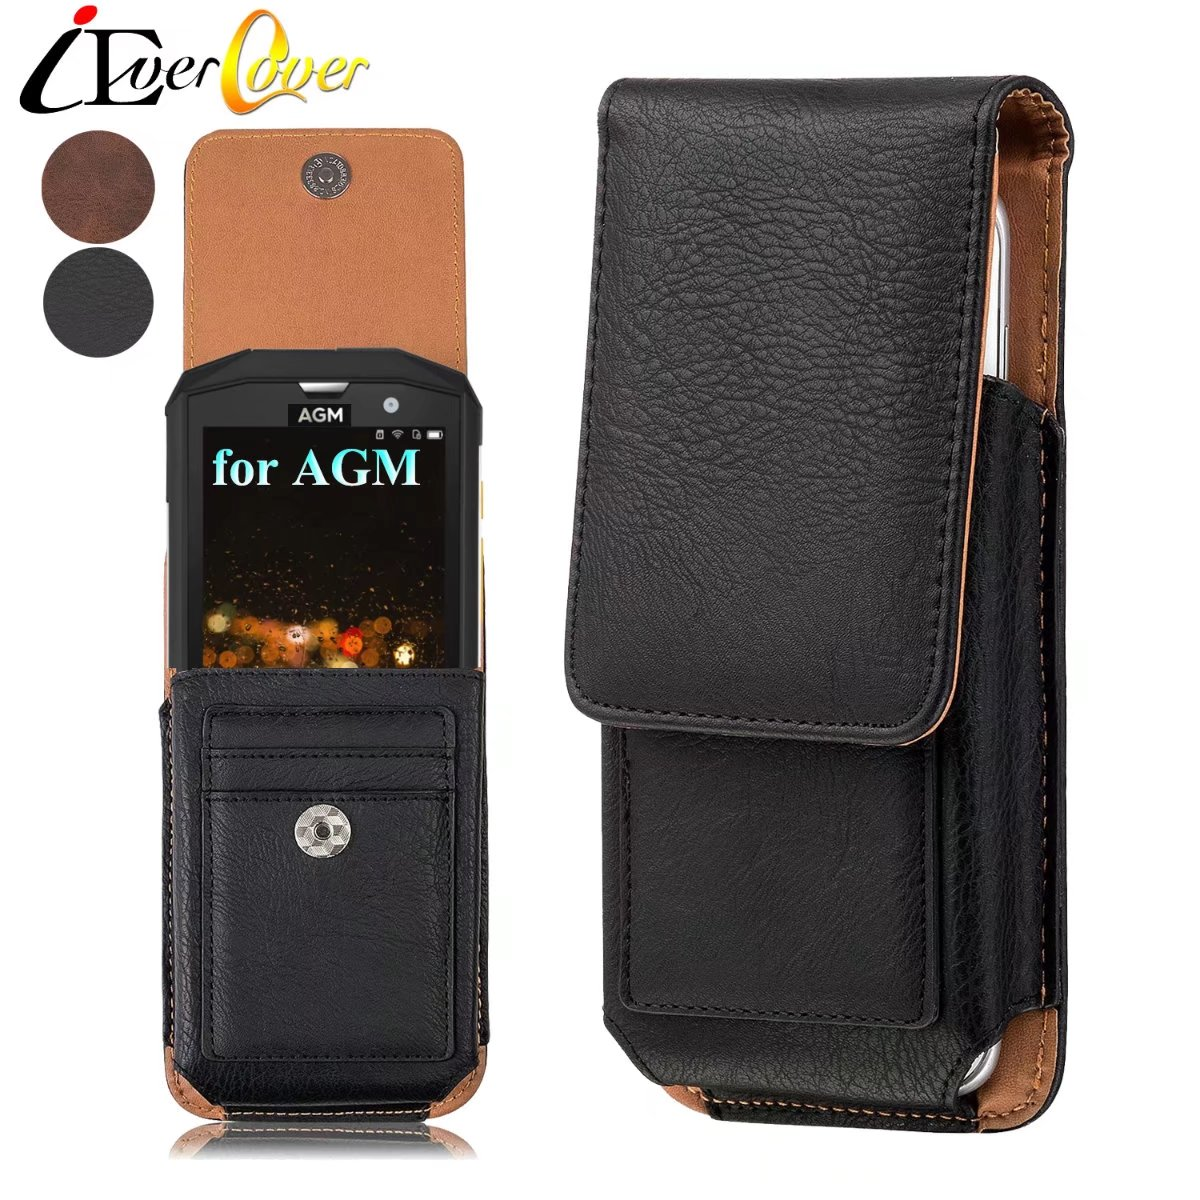 agm com case Compatibility - agm protective smart battery charging case is designed for  your apple iphone 7 plus (55only) 100% full compatible support with ios.